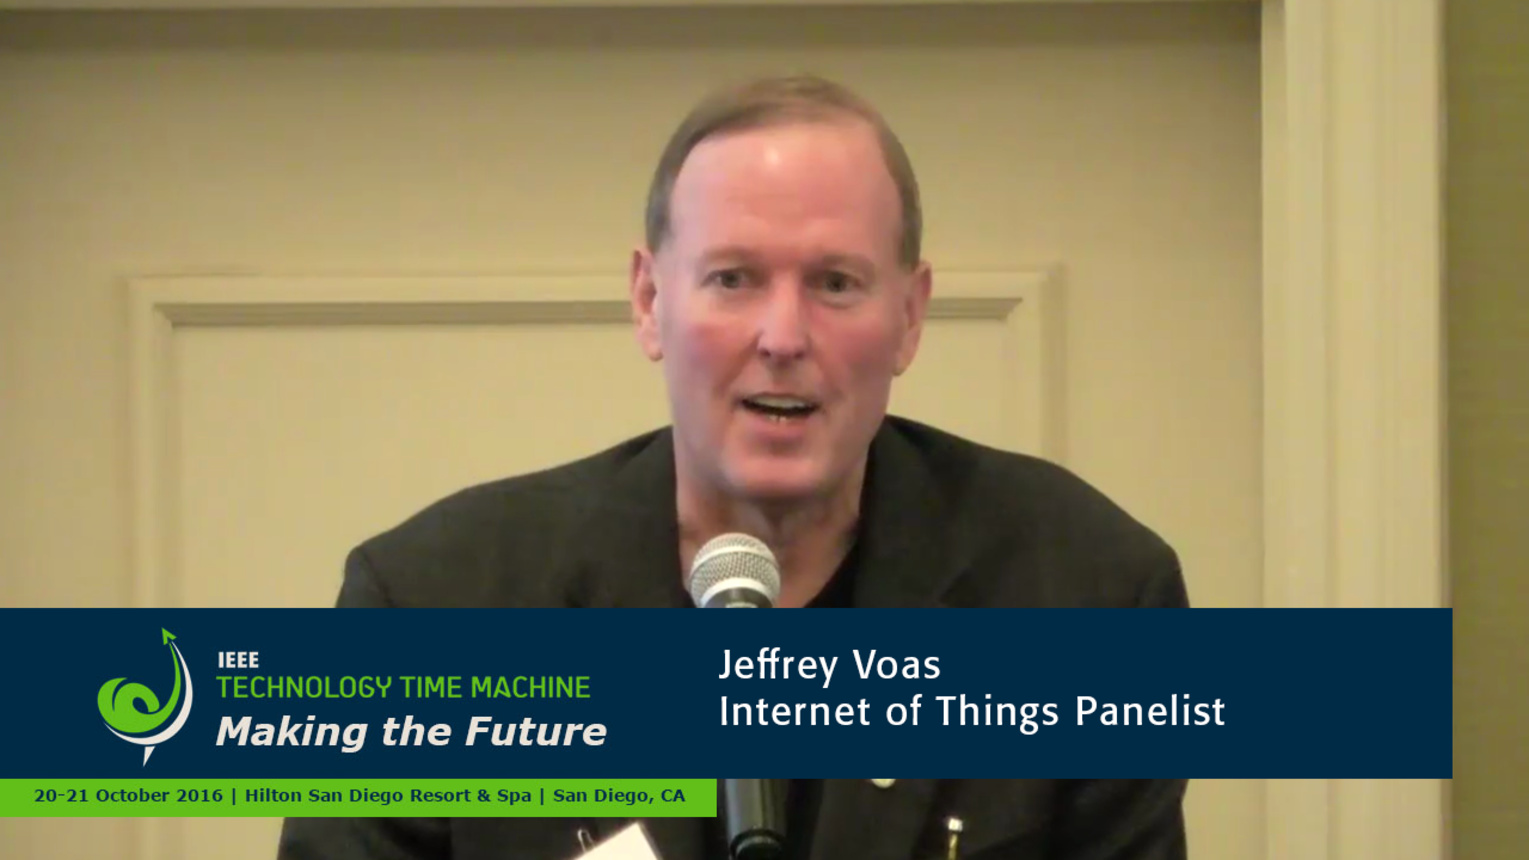 Internet of Things Panelist - Jeffrey Voas: 2016 Technology Time Machine